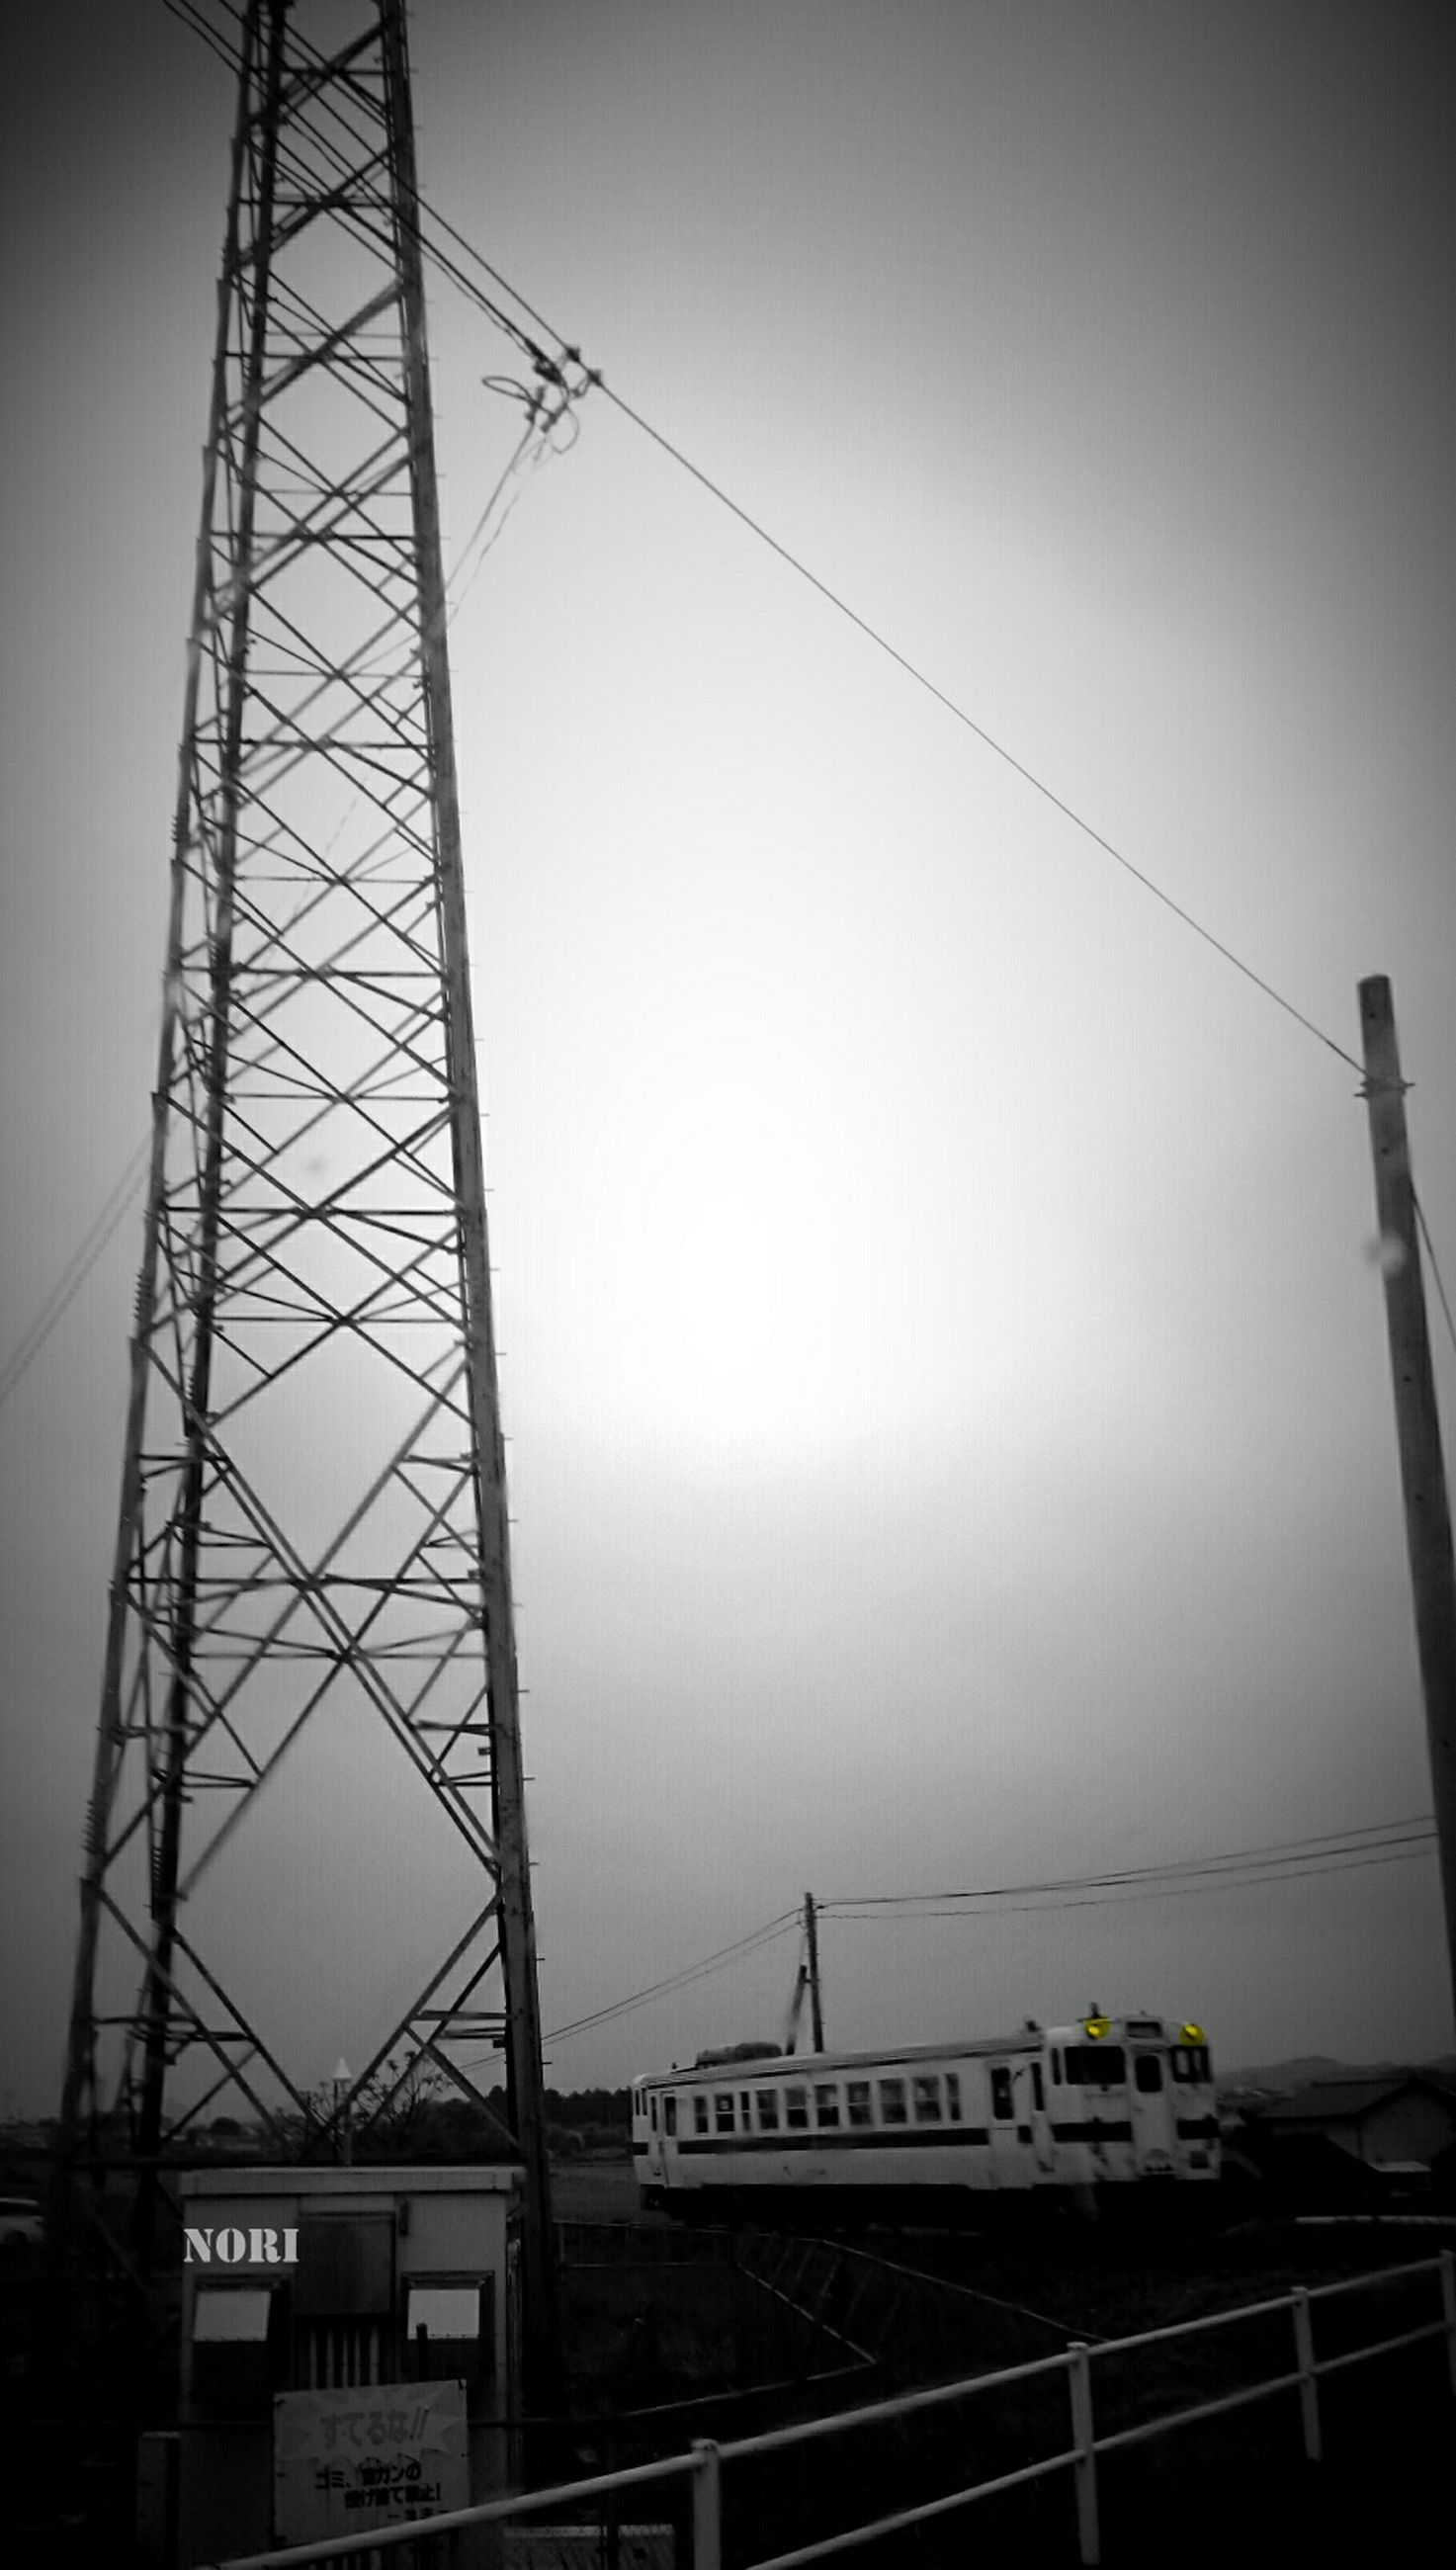 connection, transportation, low angle view, power line, electricity pylon, power supply, cable, sky, communication, electricity, clear sky, technology, text, fuel and power generation, built structure, rail transportation, outdoors, dusk, no people, public transportation